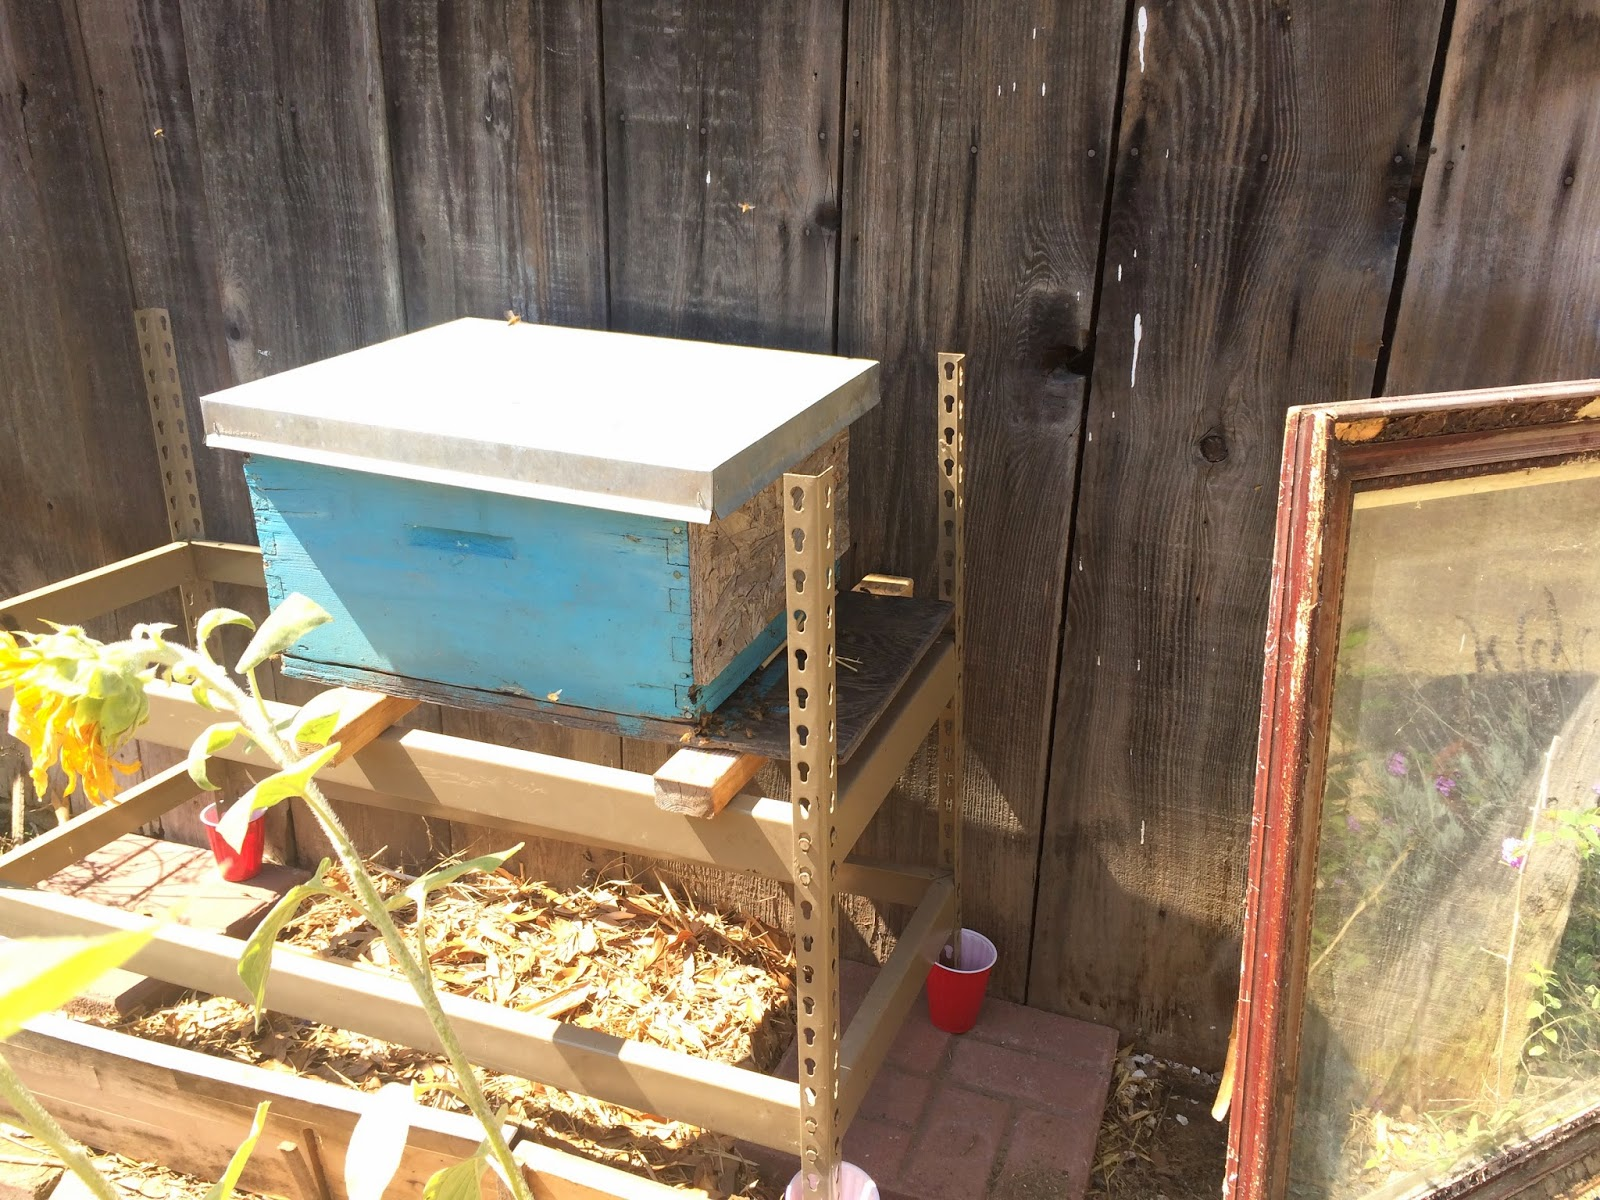 Bees Safely in their new home